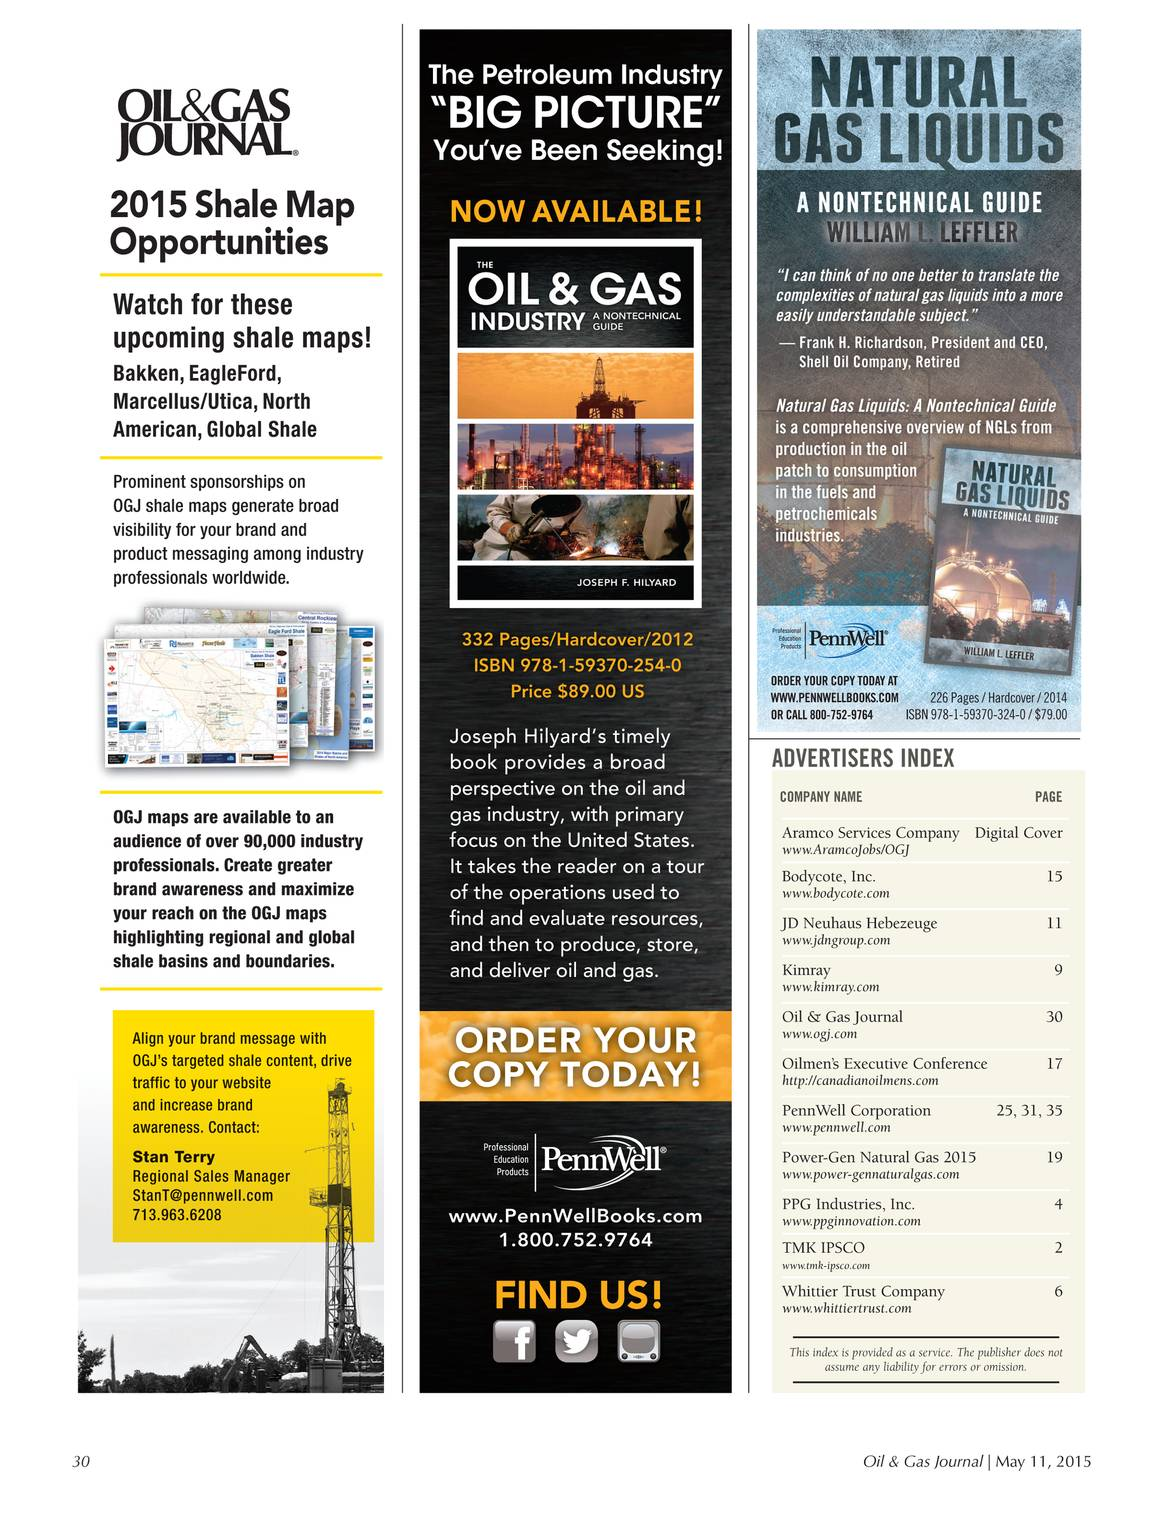 Oil & Gas Journal - May 11, 2015 - page 30